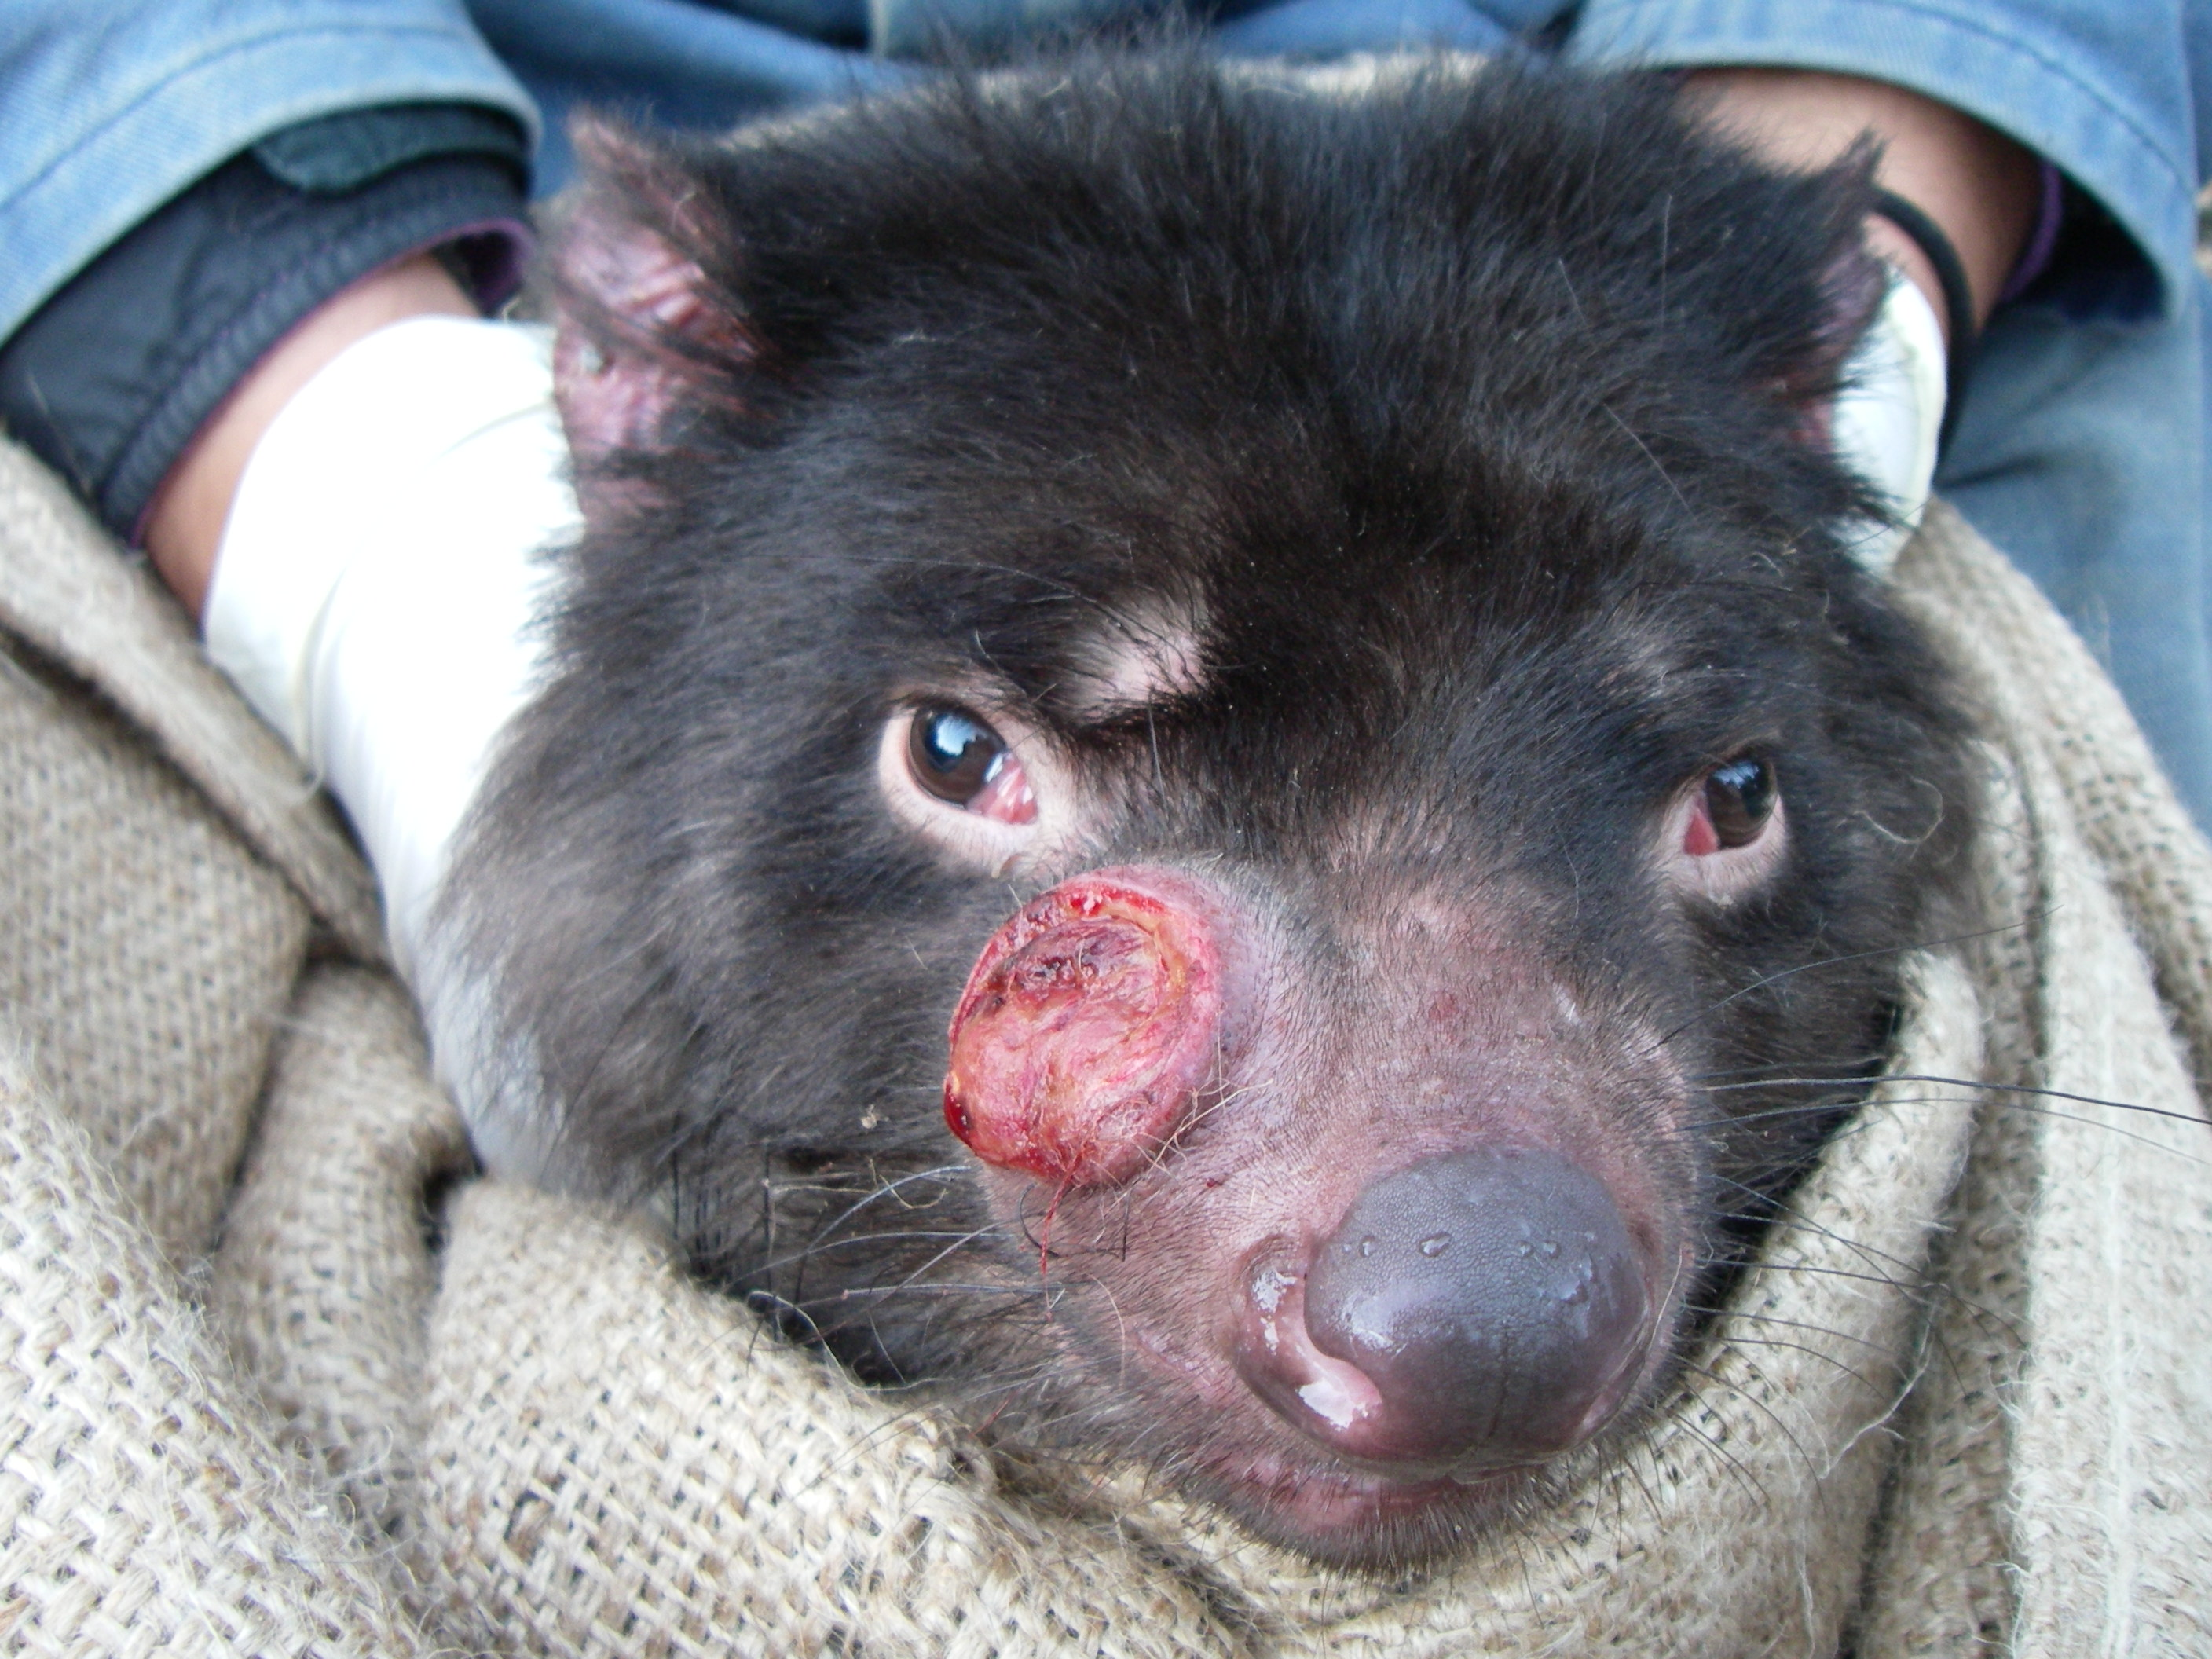 A Tasmanian devil with a cancerous tumour.